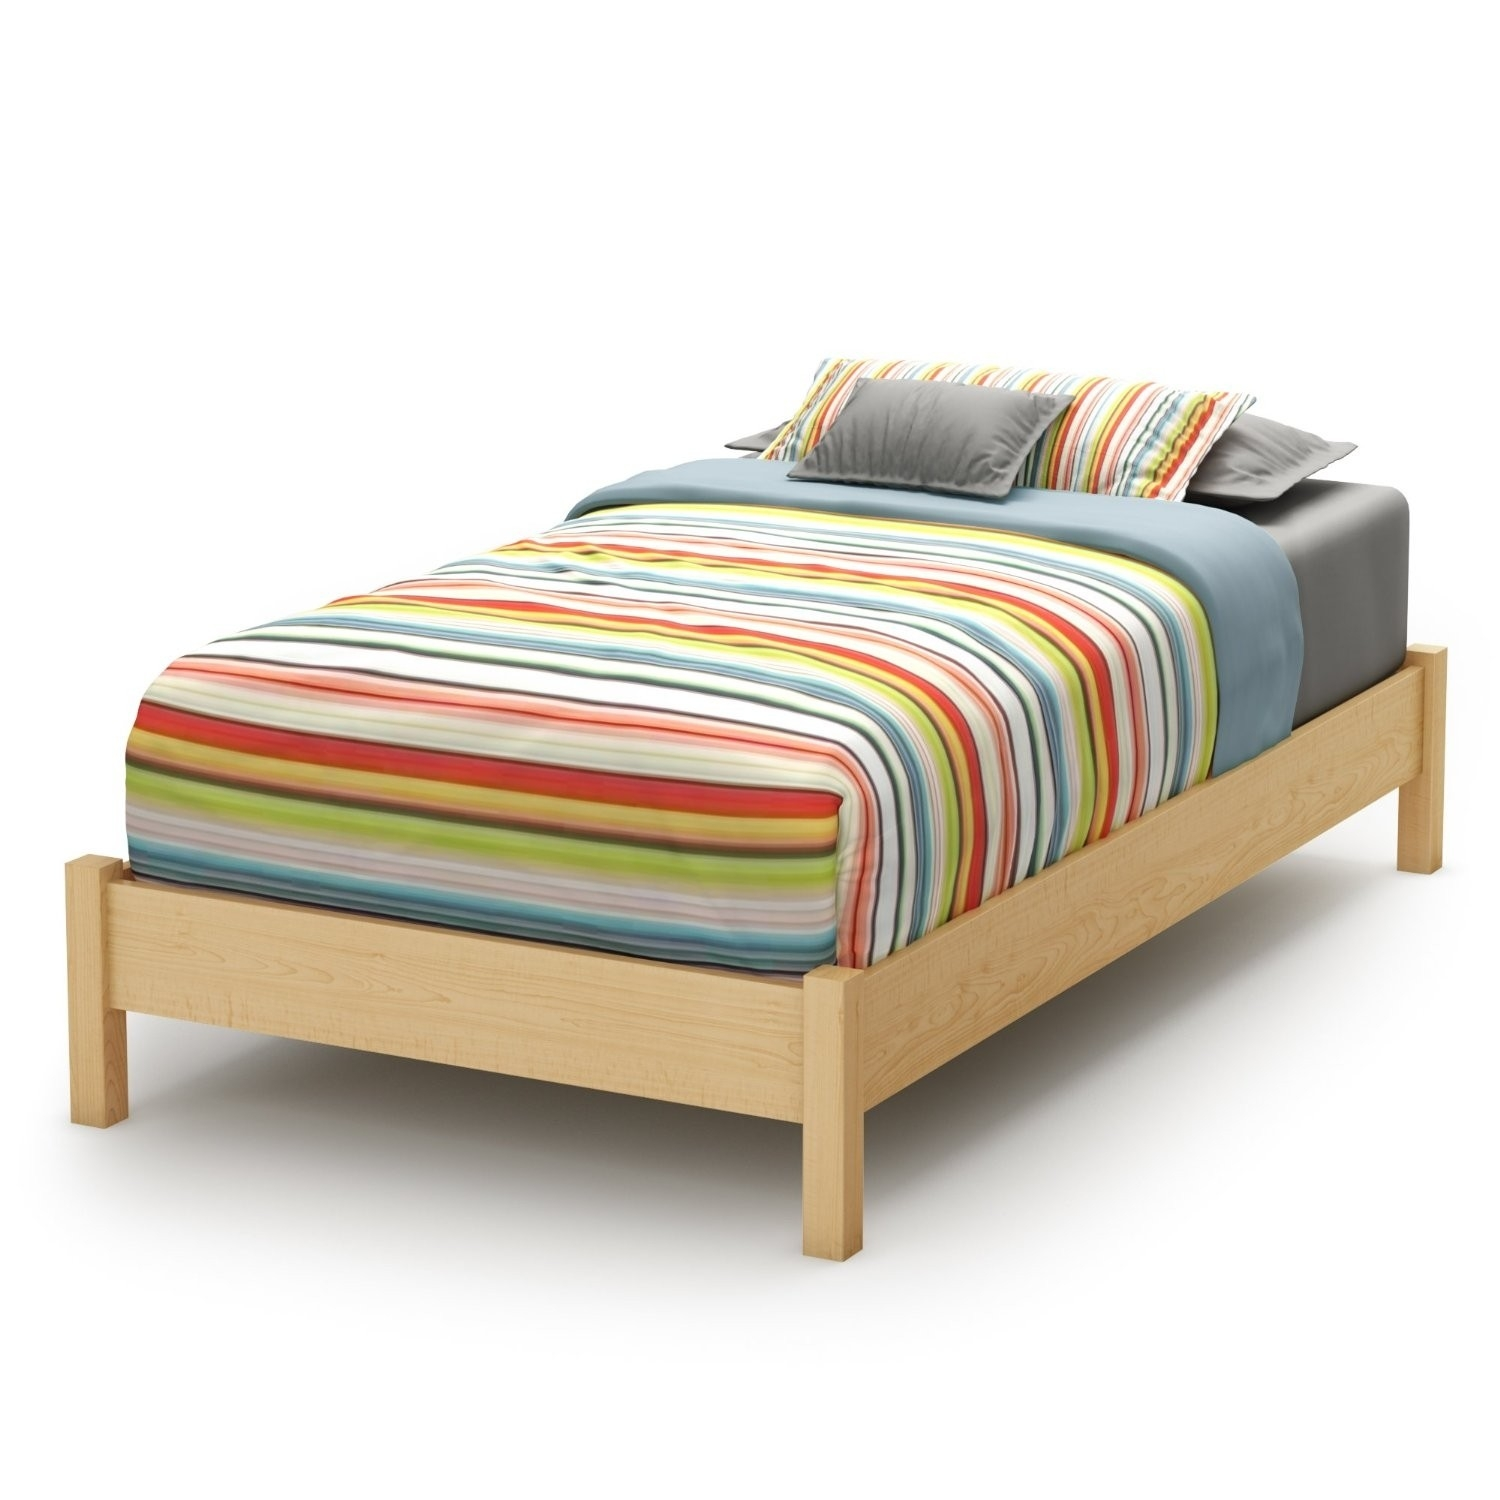 Twin Wood Bed Frames1500 X 1500